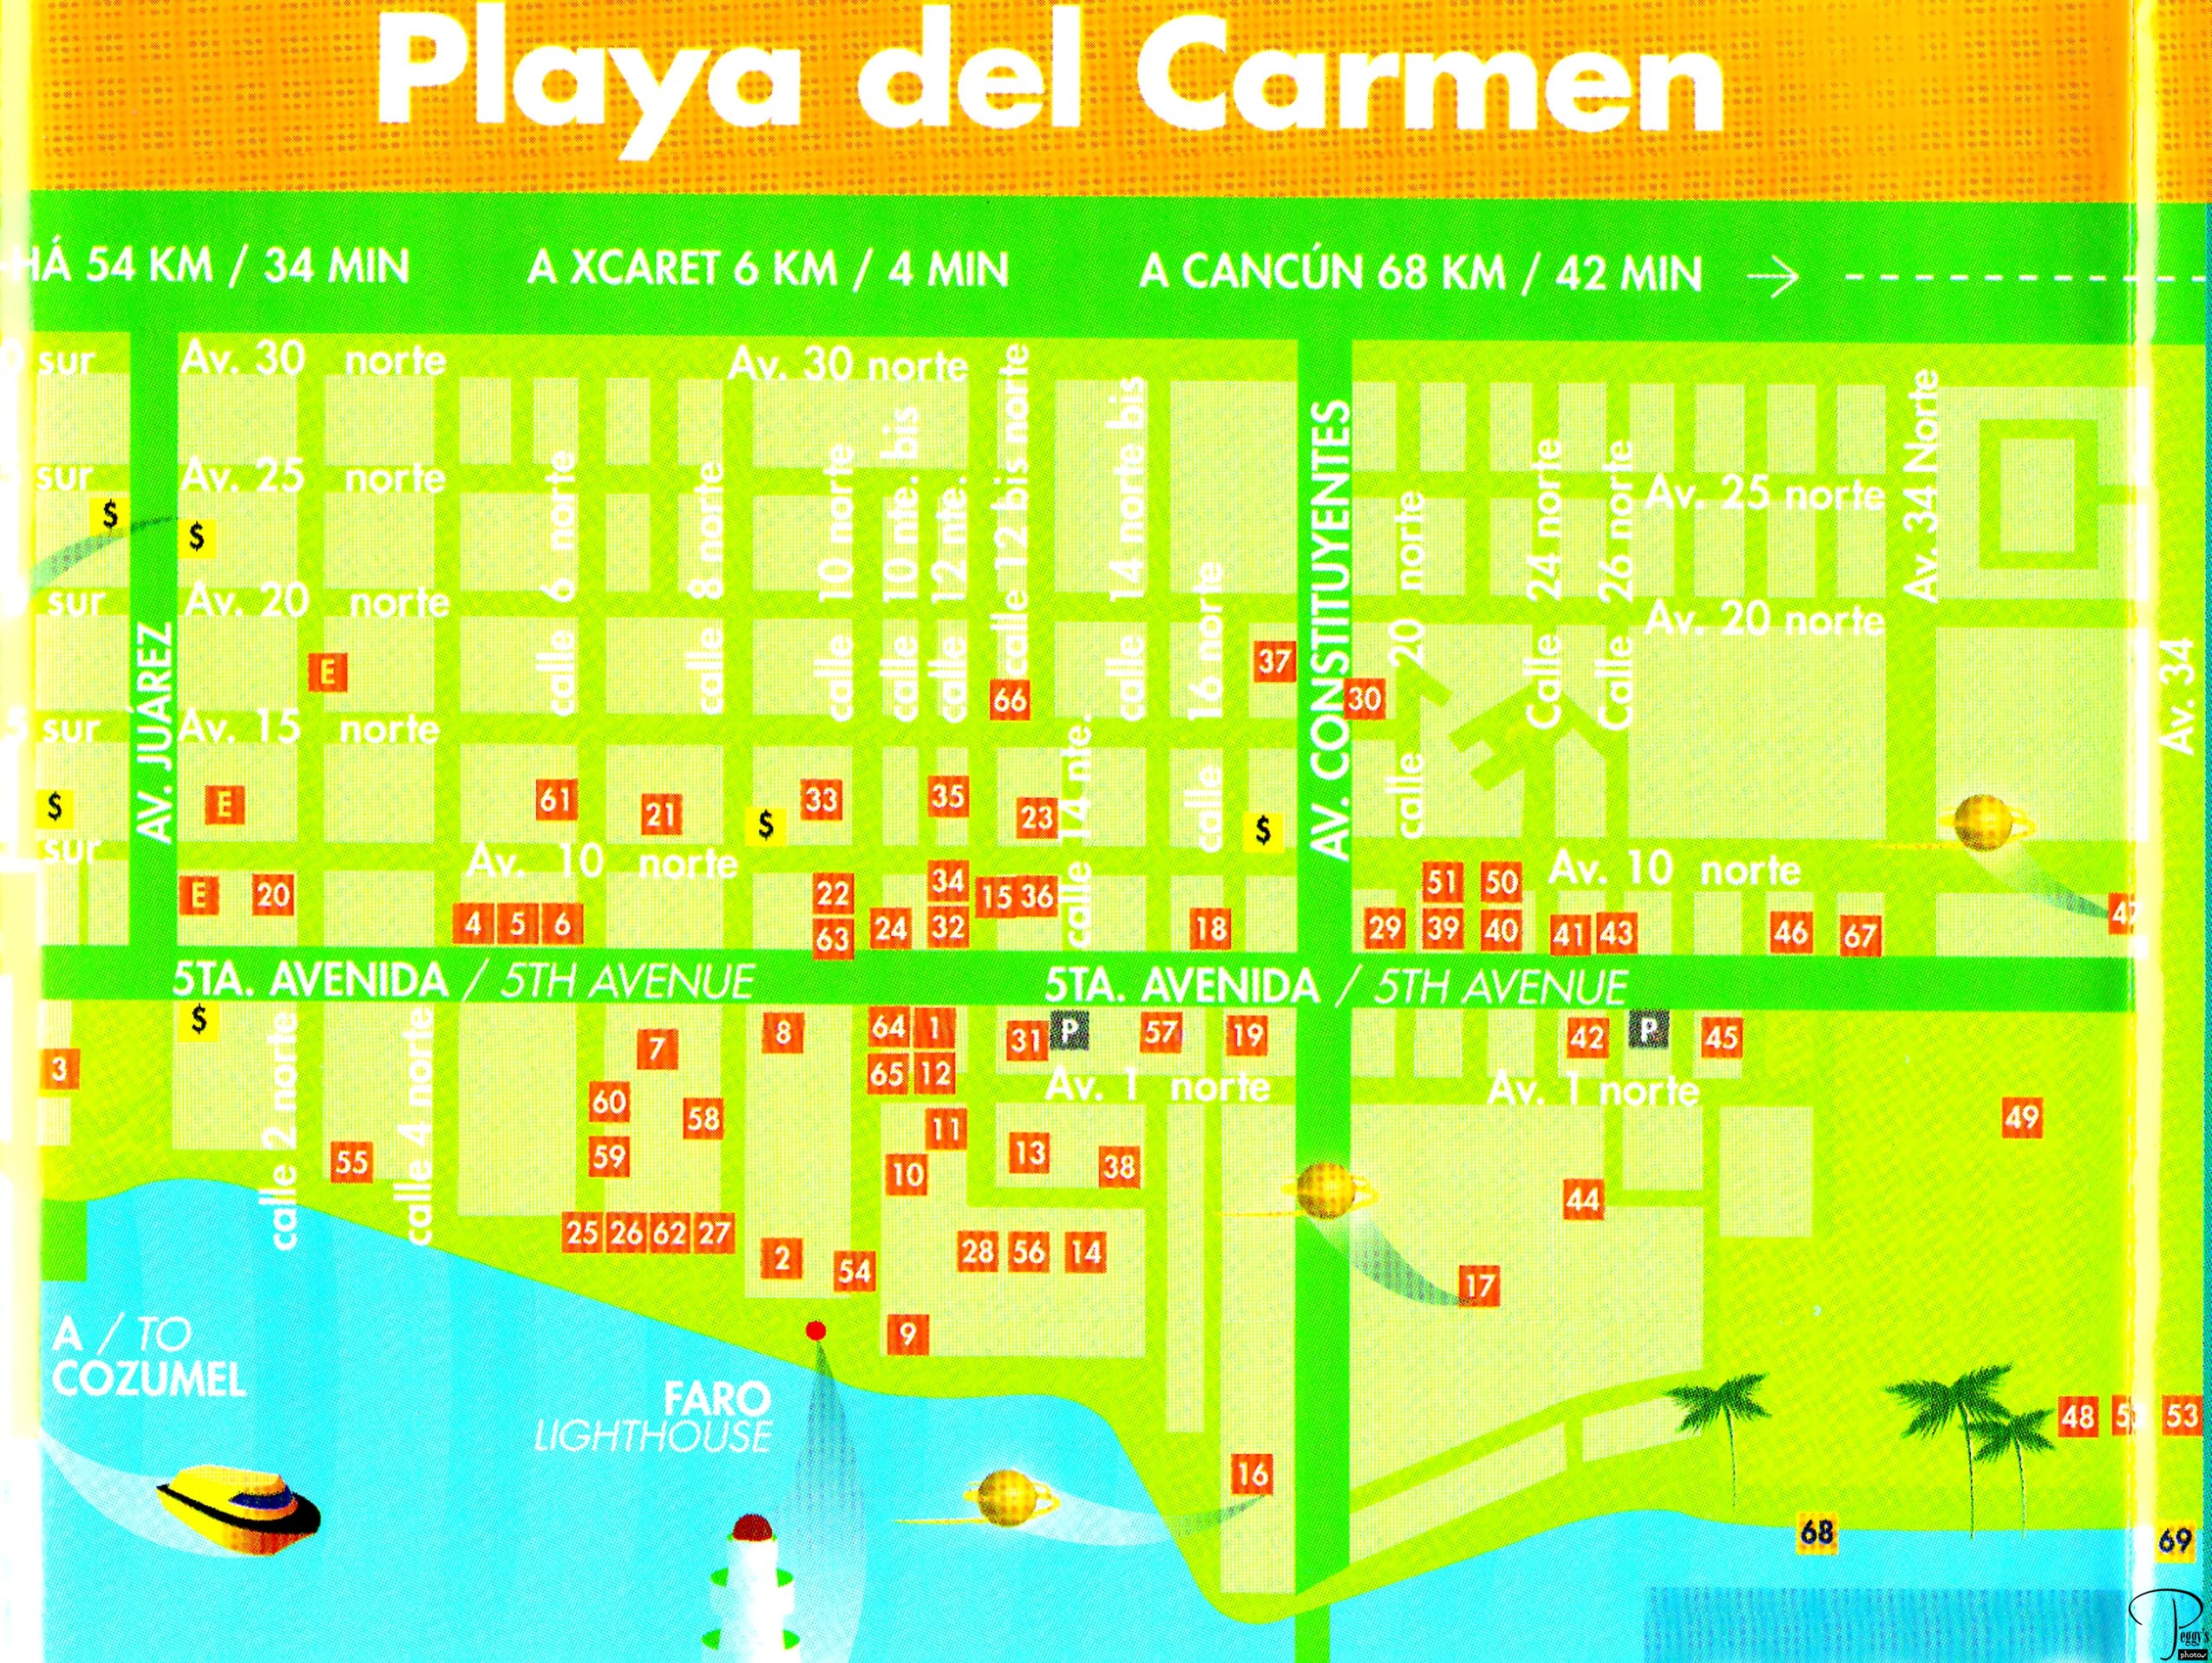 Day 5, Fifth Ave., Playa del Carmen @ Peggy's Photos